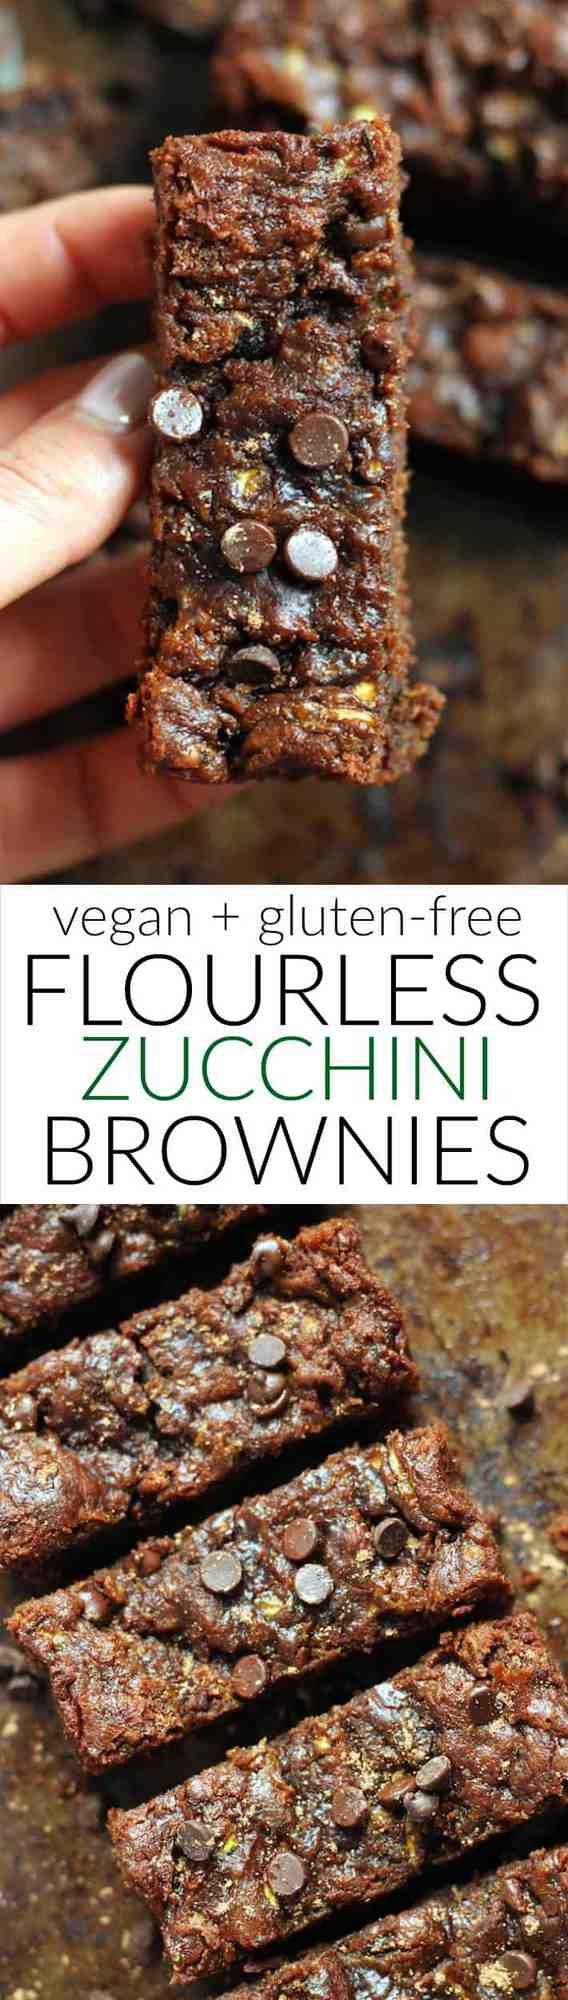 Flourless Vegan Peanut Butter Zucchini Brownies! They're super easy ...